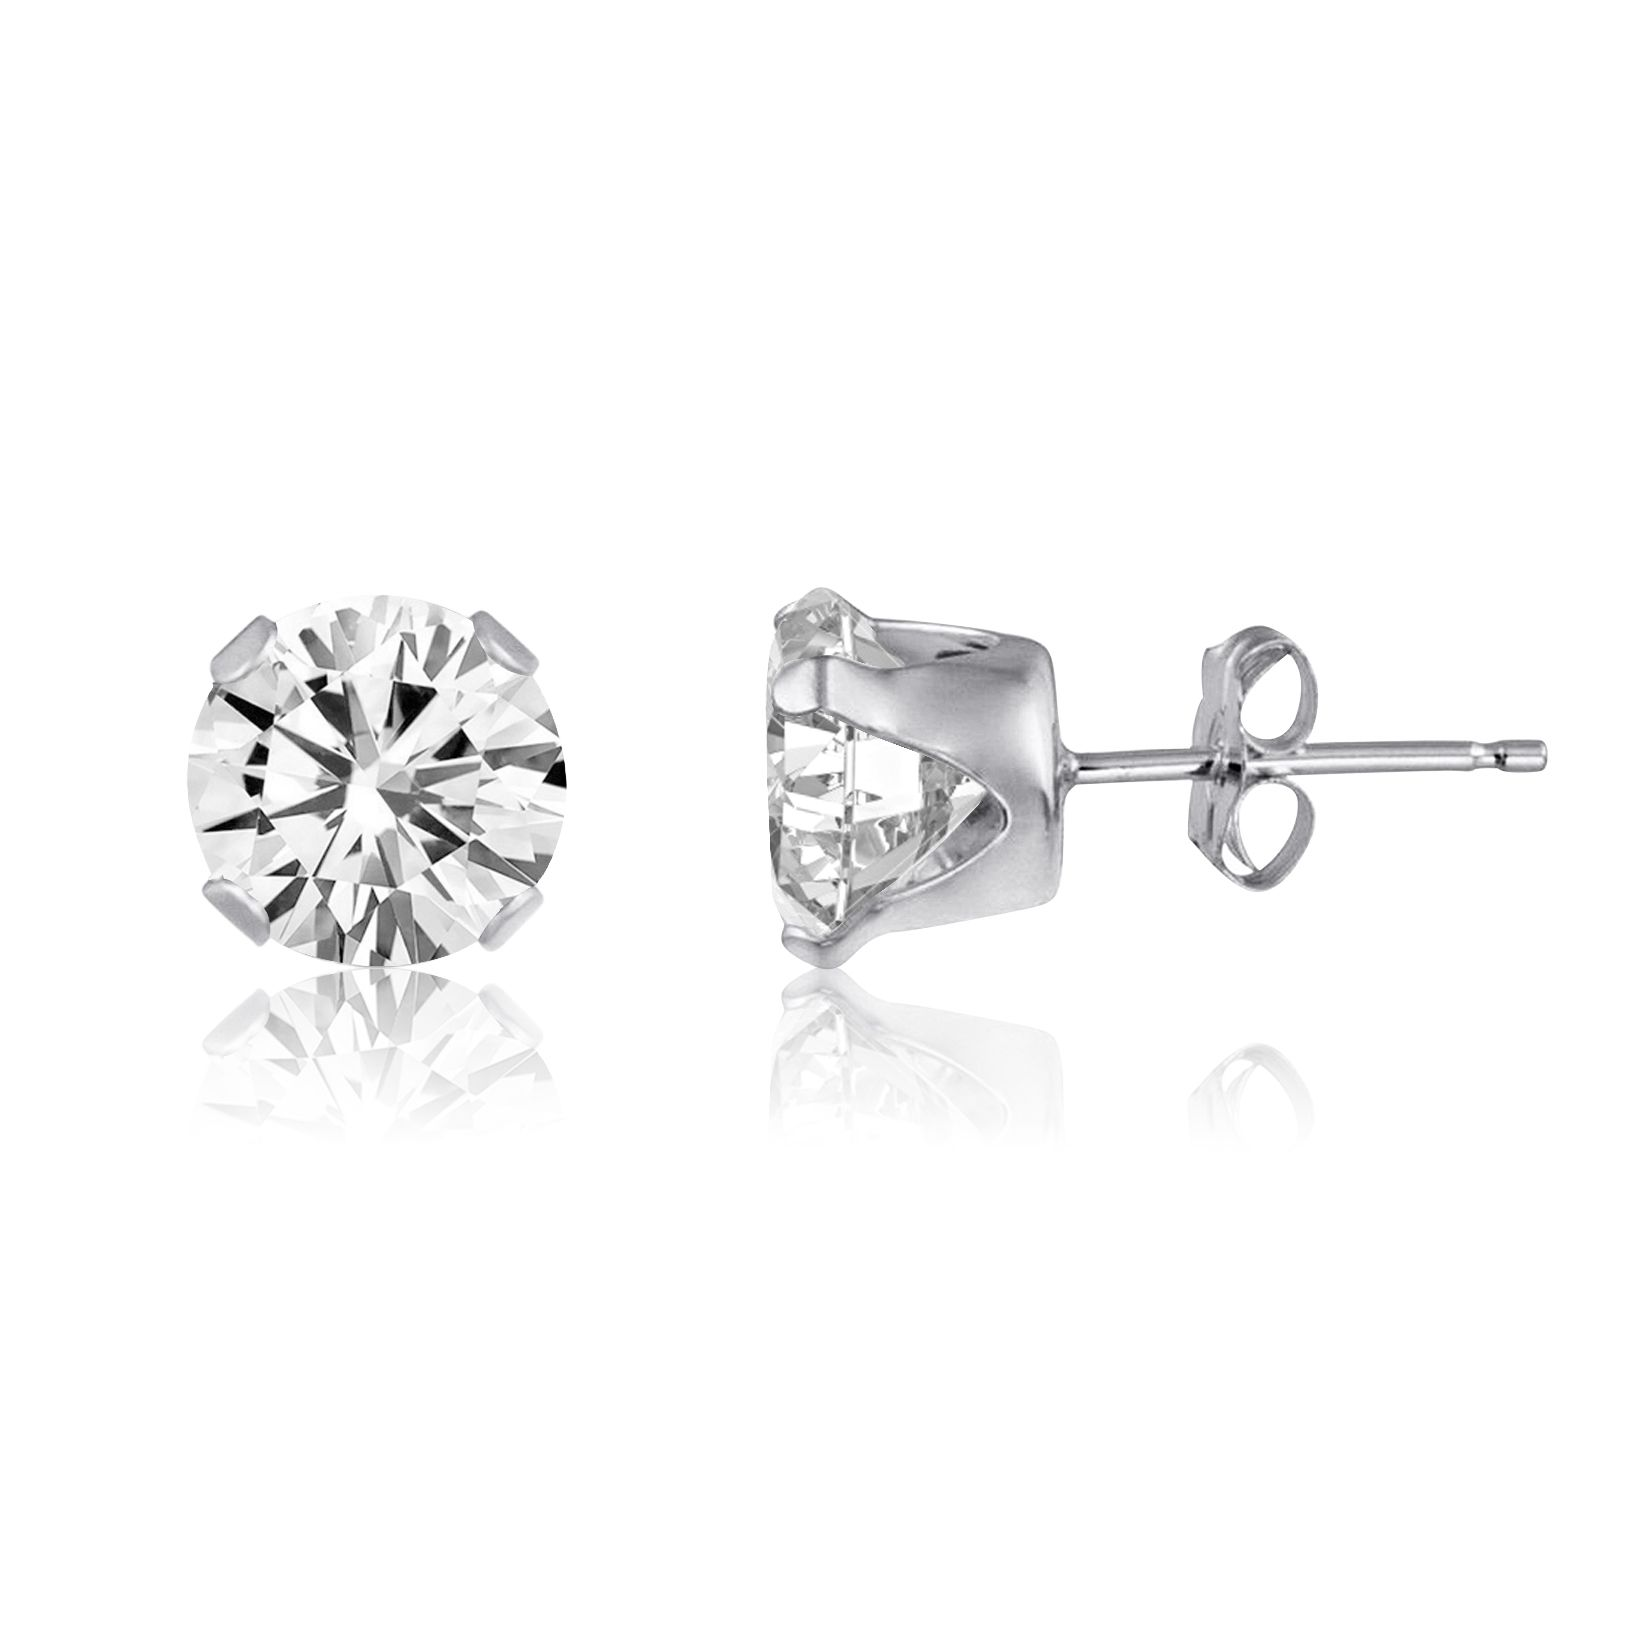 2ct white topaz 925 sterling silver stud earrings - 6mm round dzutzoq